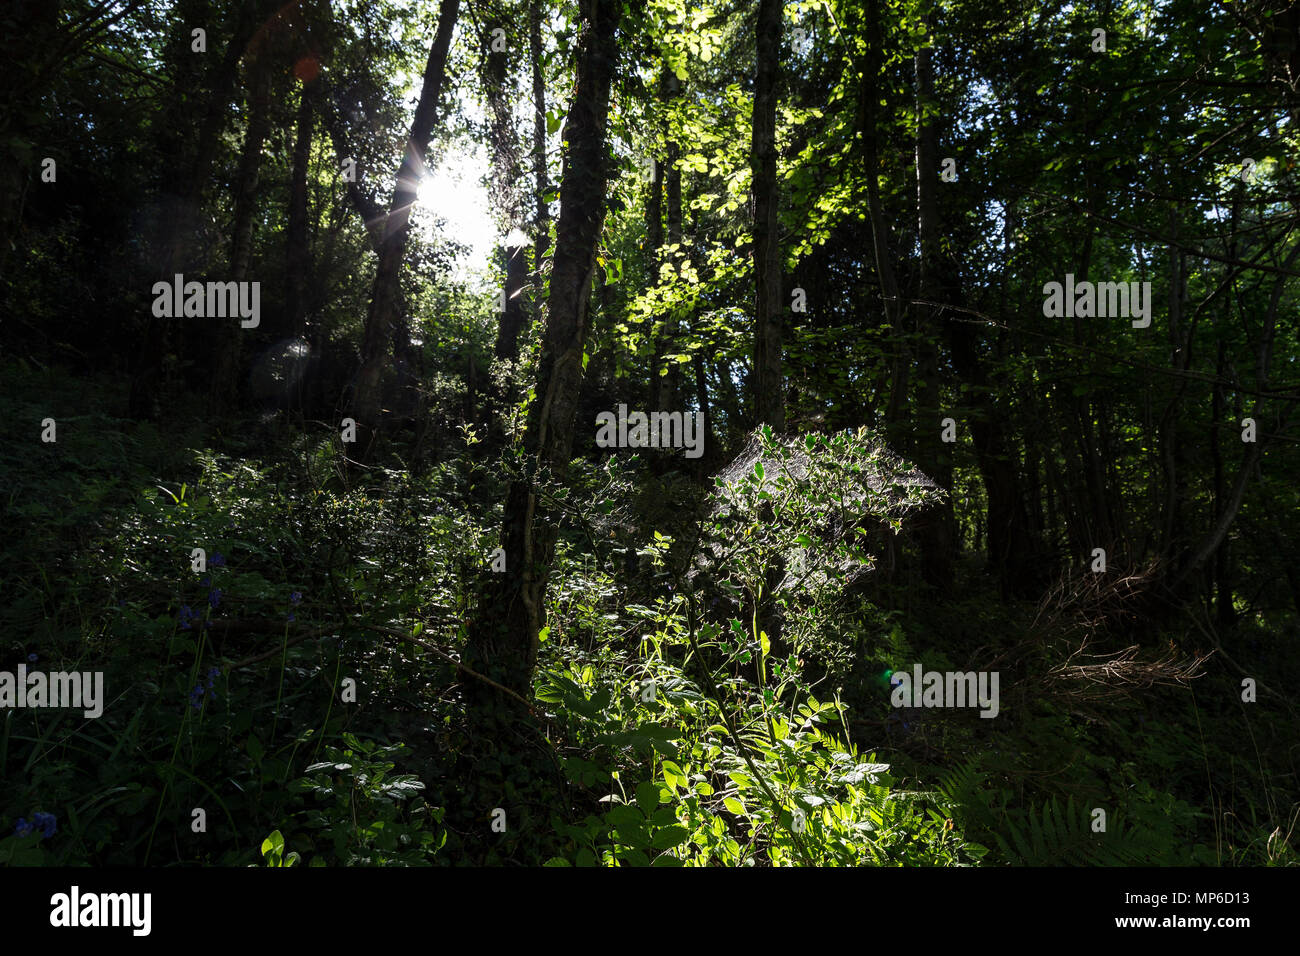 thicket, grove, wood, coppice, stand, clump, brake,shrubbery, vegetation, greenery, ground cover, underwood, copsewood, brushwood, brush, scrub, under - Stock Image